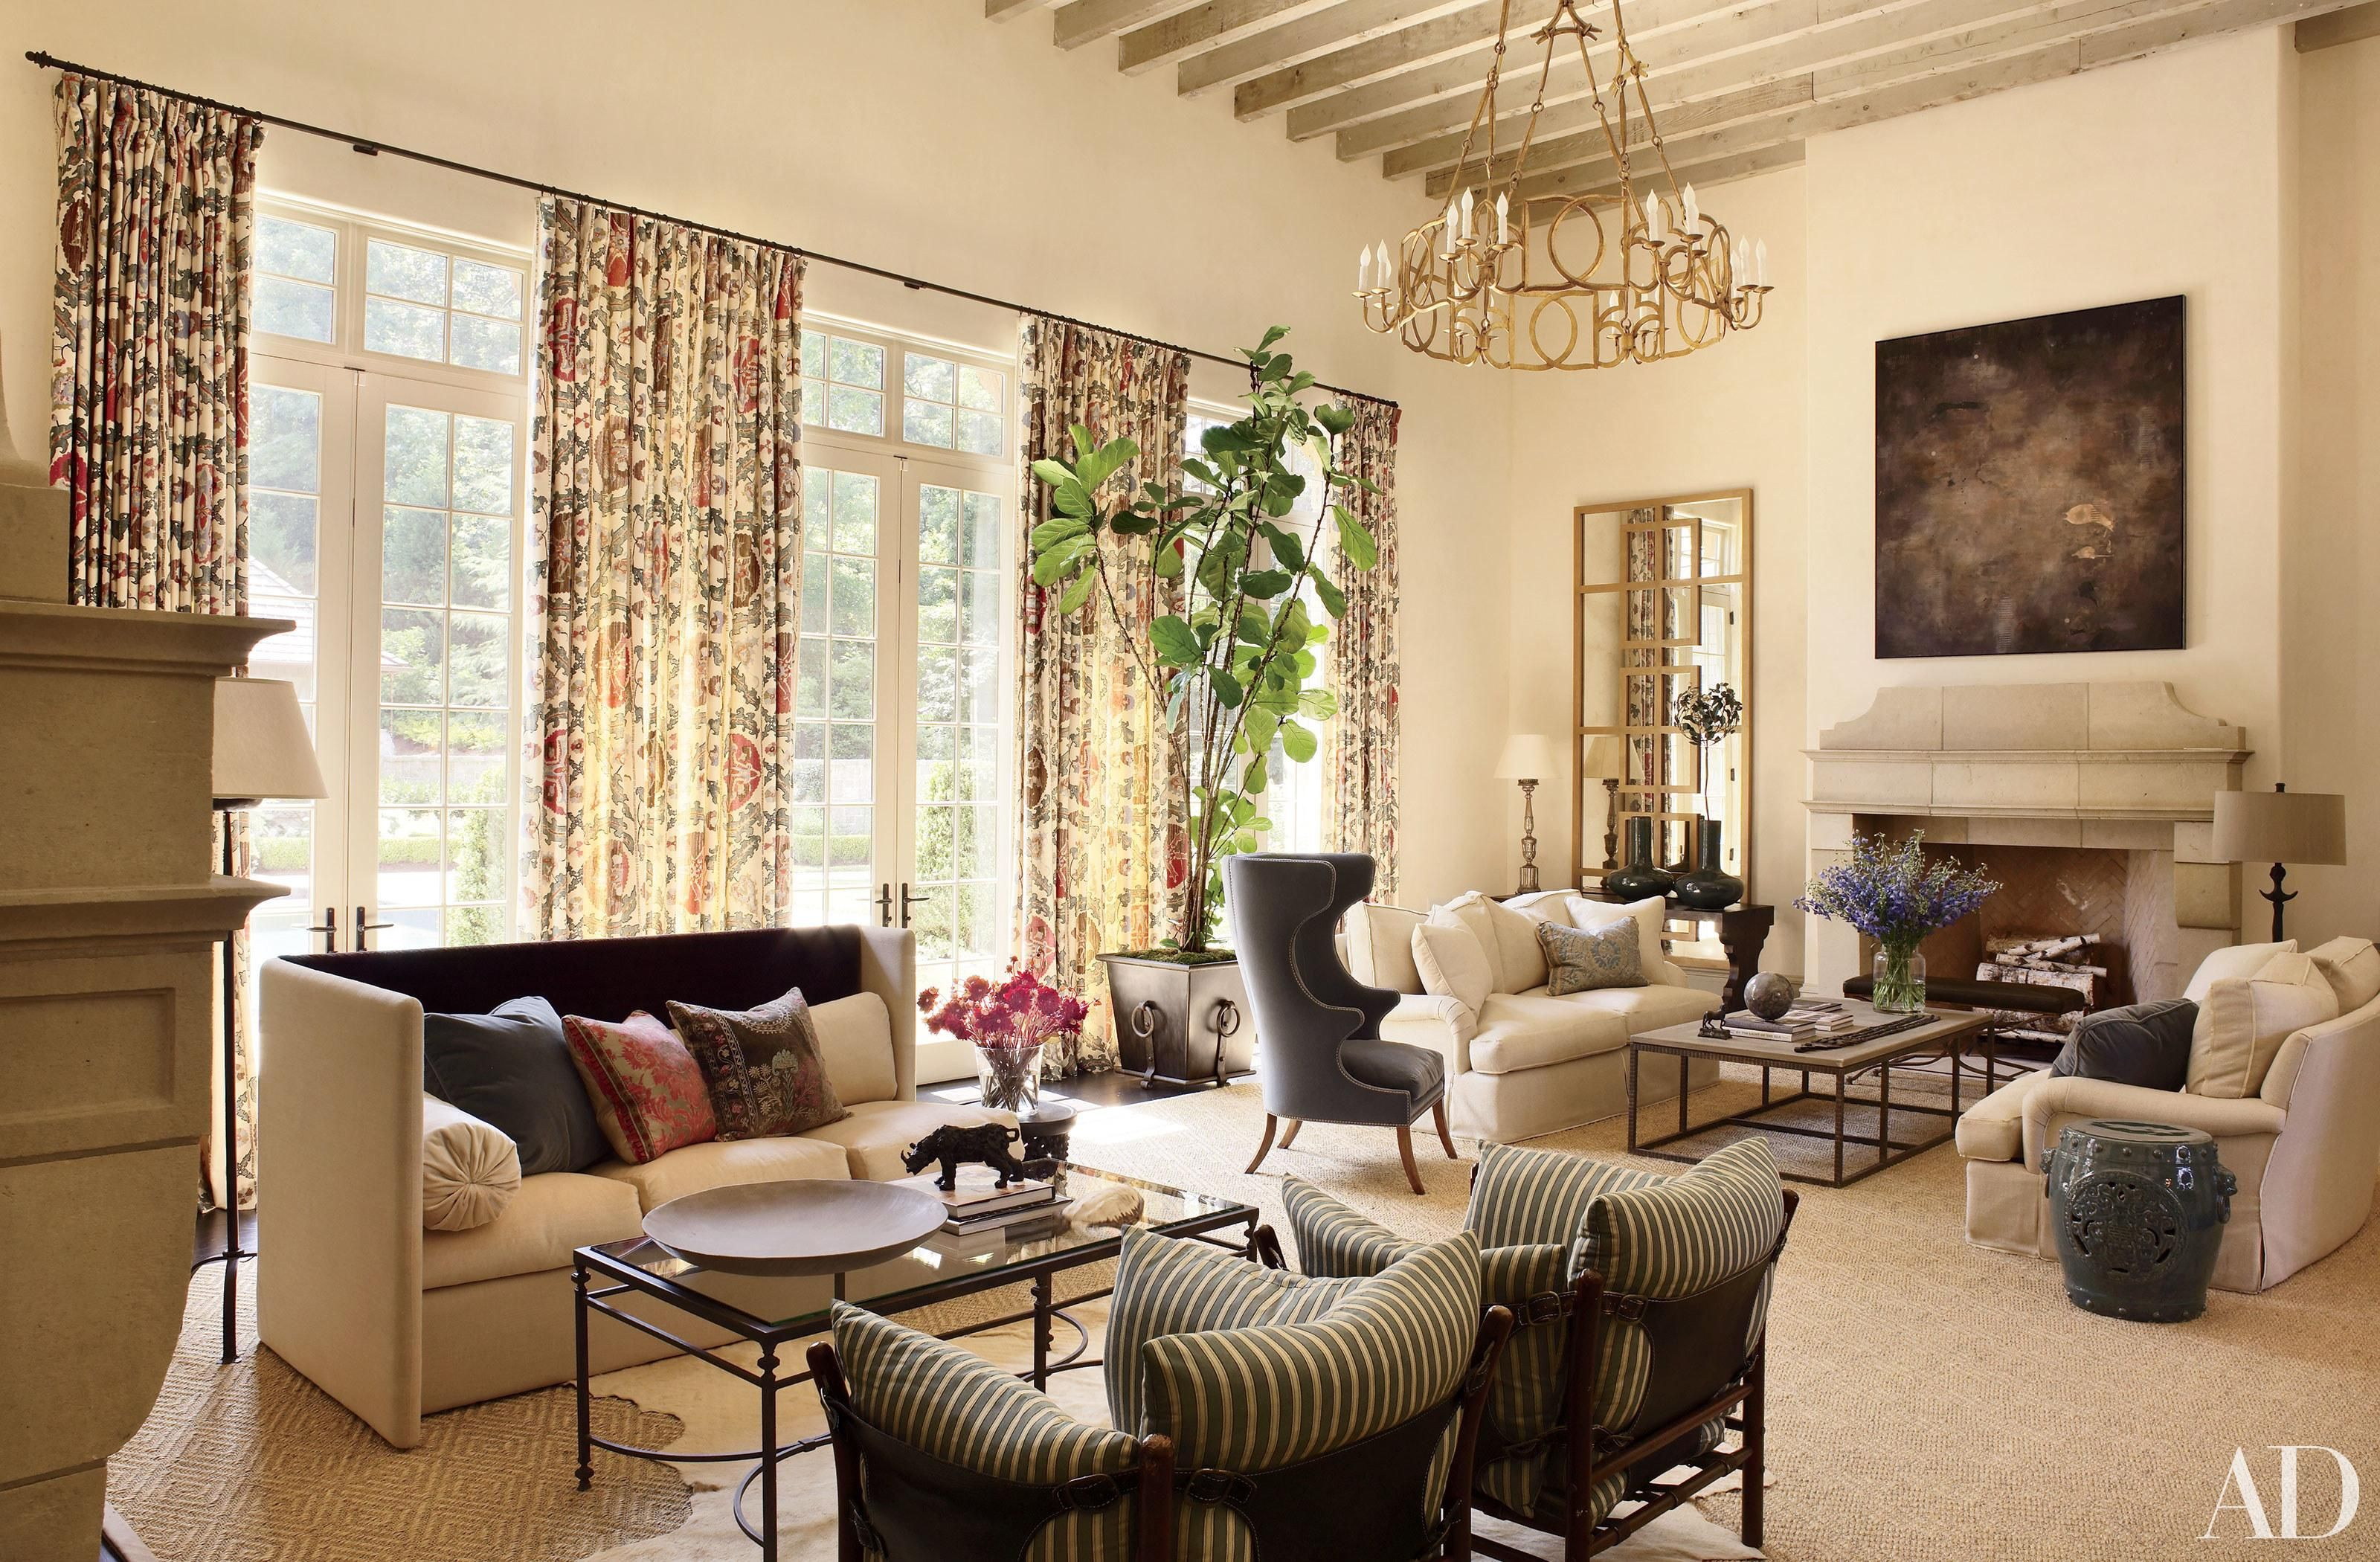 12 Traditional Rooms By Suzanne Kasler Interiors With Images